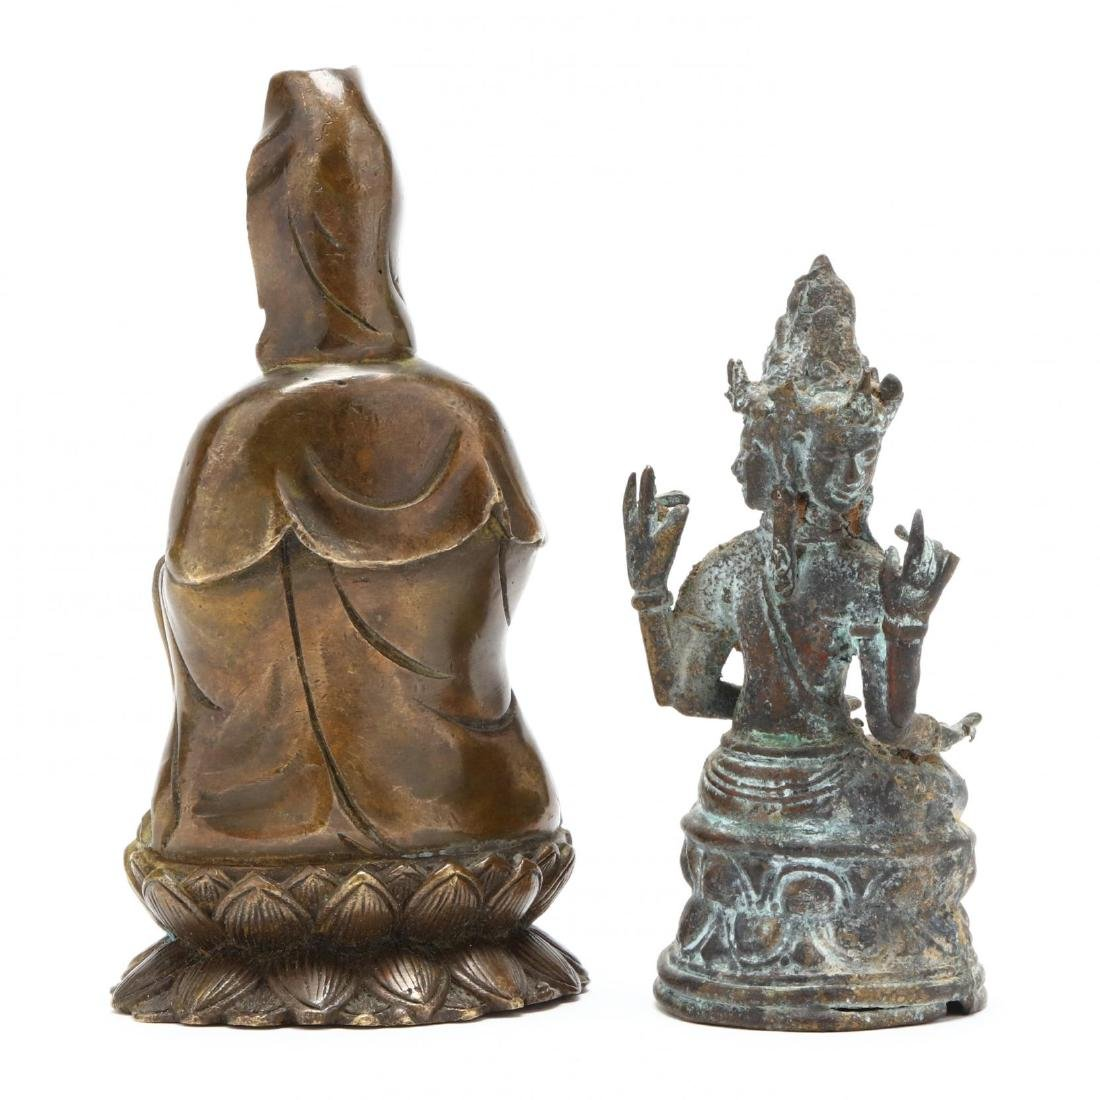 A Three Headed Indian Bronze Sculpture and Bronze - 2